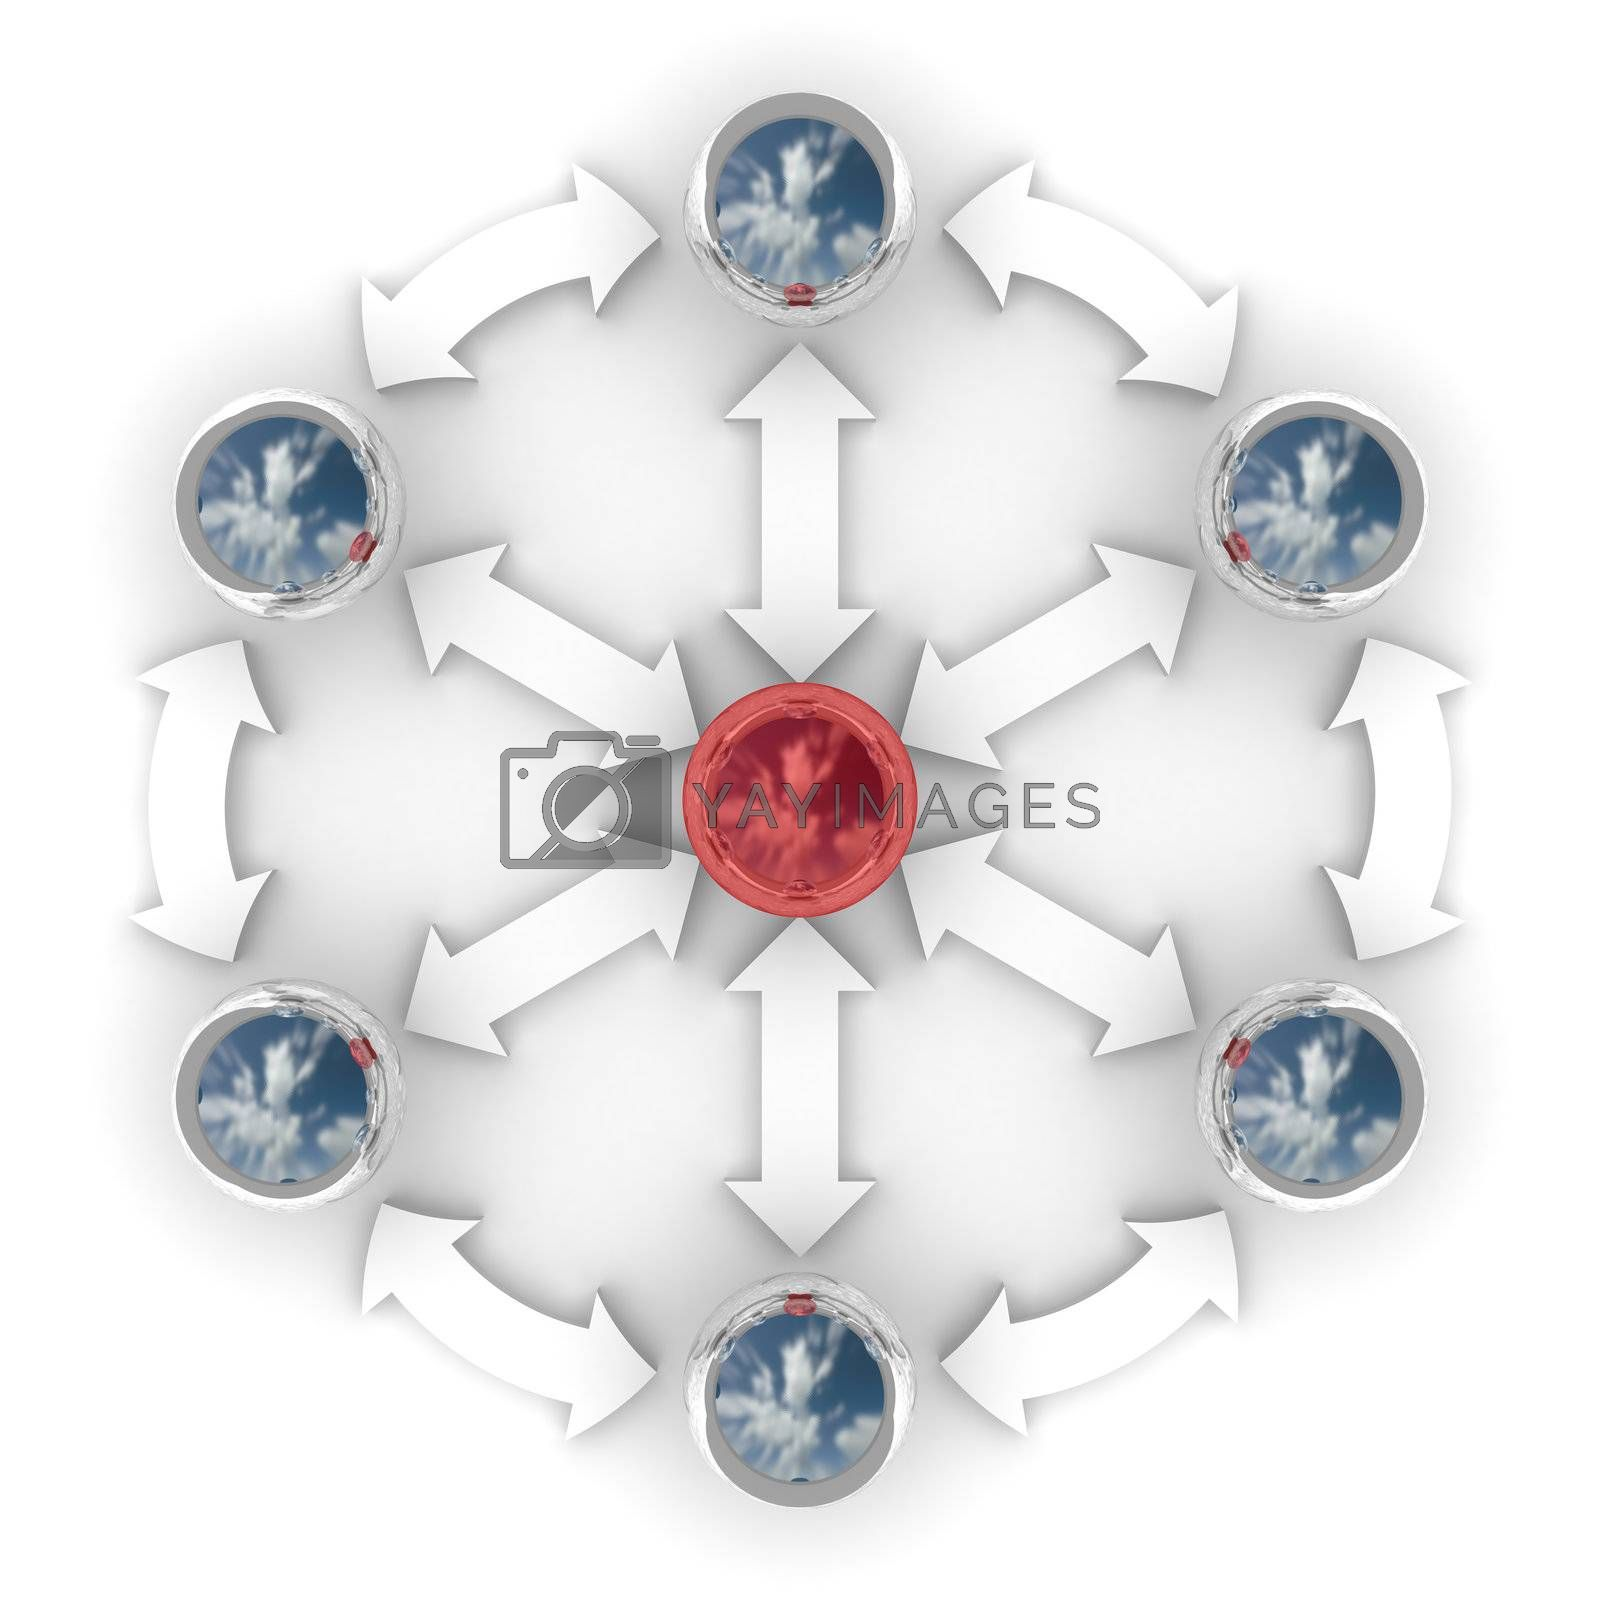 Royalty free image of Conceptual image of teamwork. 3D image. by ISerg